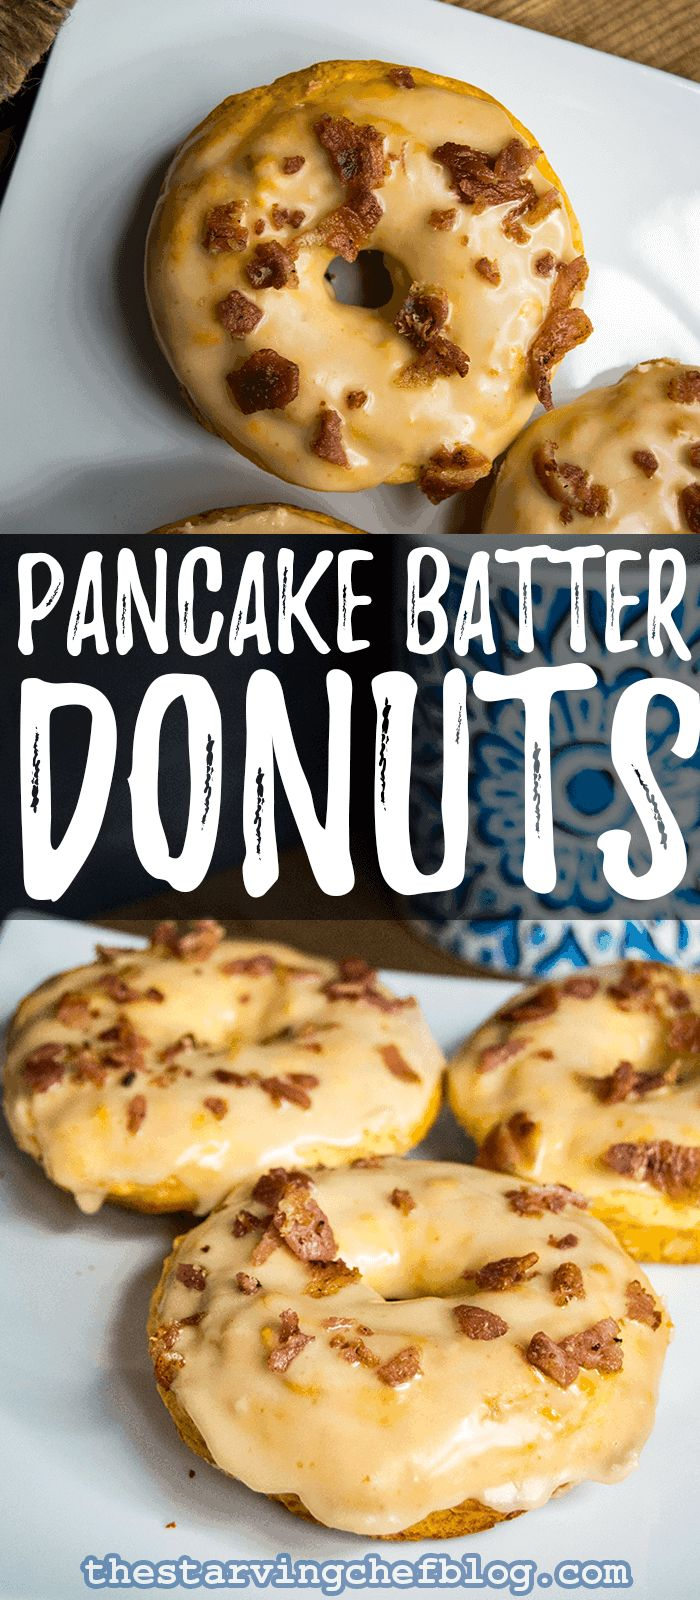 The Starving Chef | Pancake batter doughnuts with a maple bacon glaze - what could be better!?